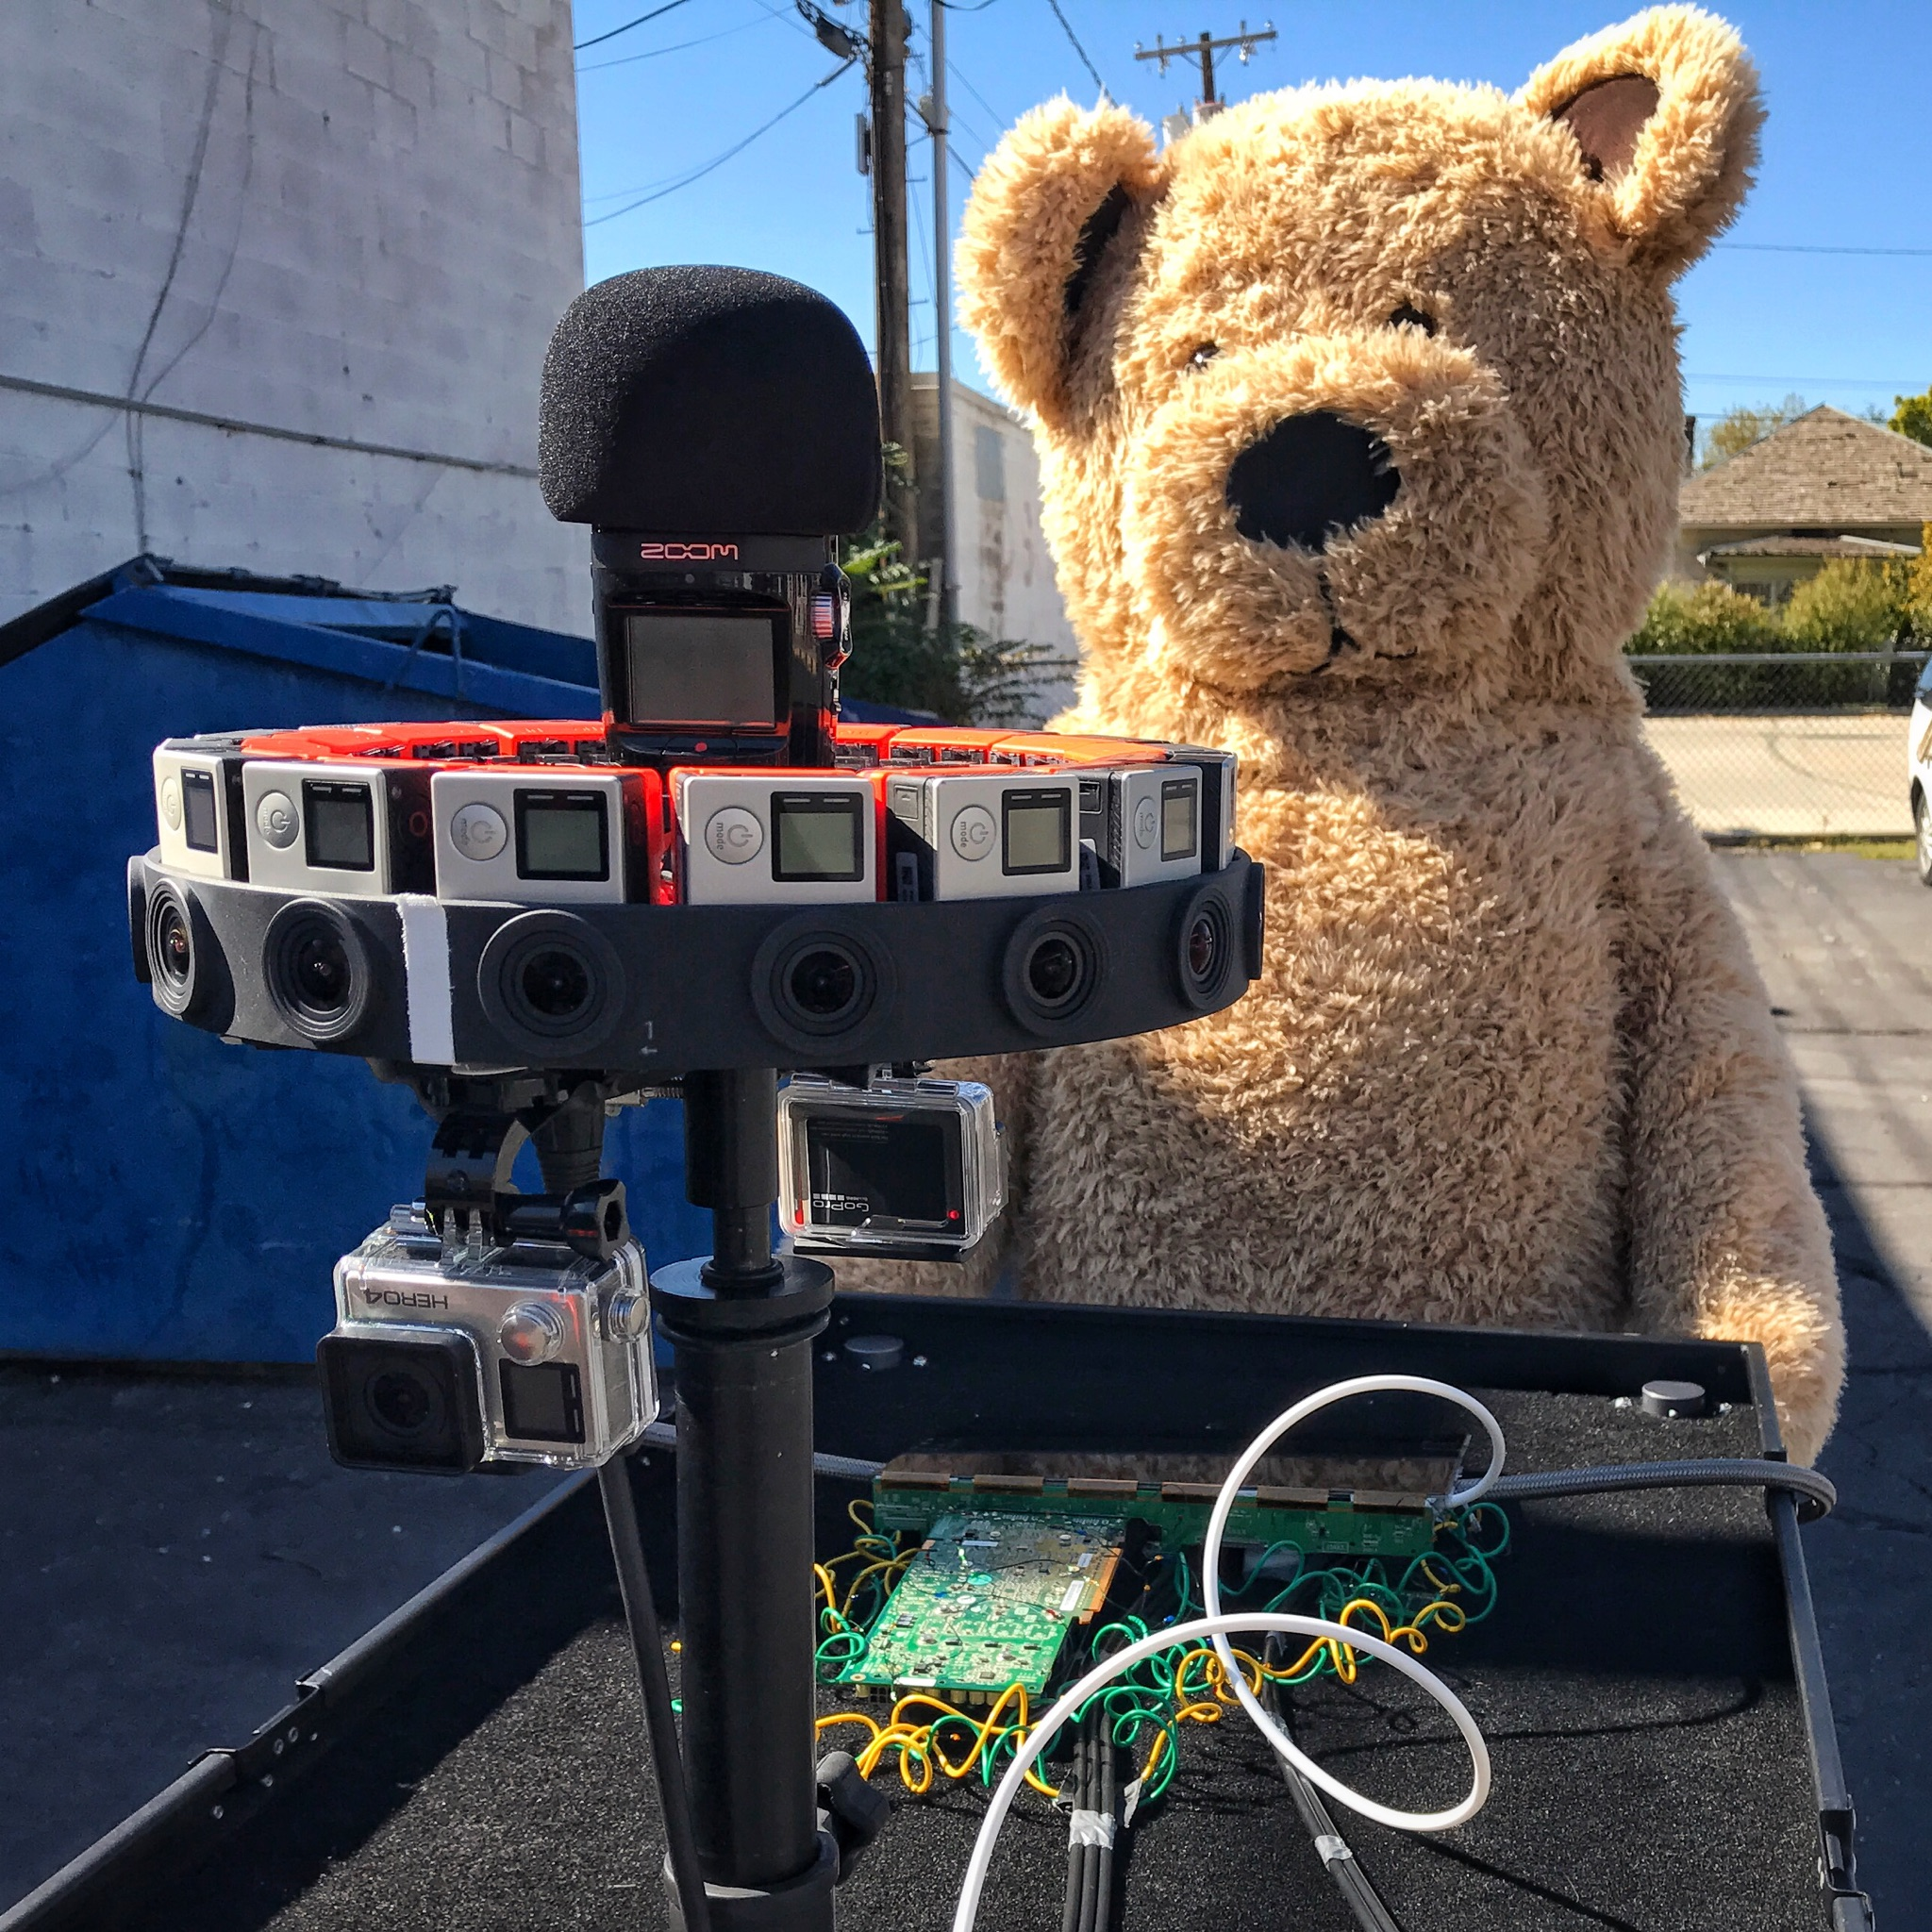 H2n Mounted on GoPro Odyssey for Spatial Audio Capture